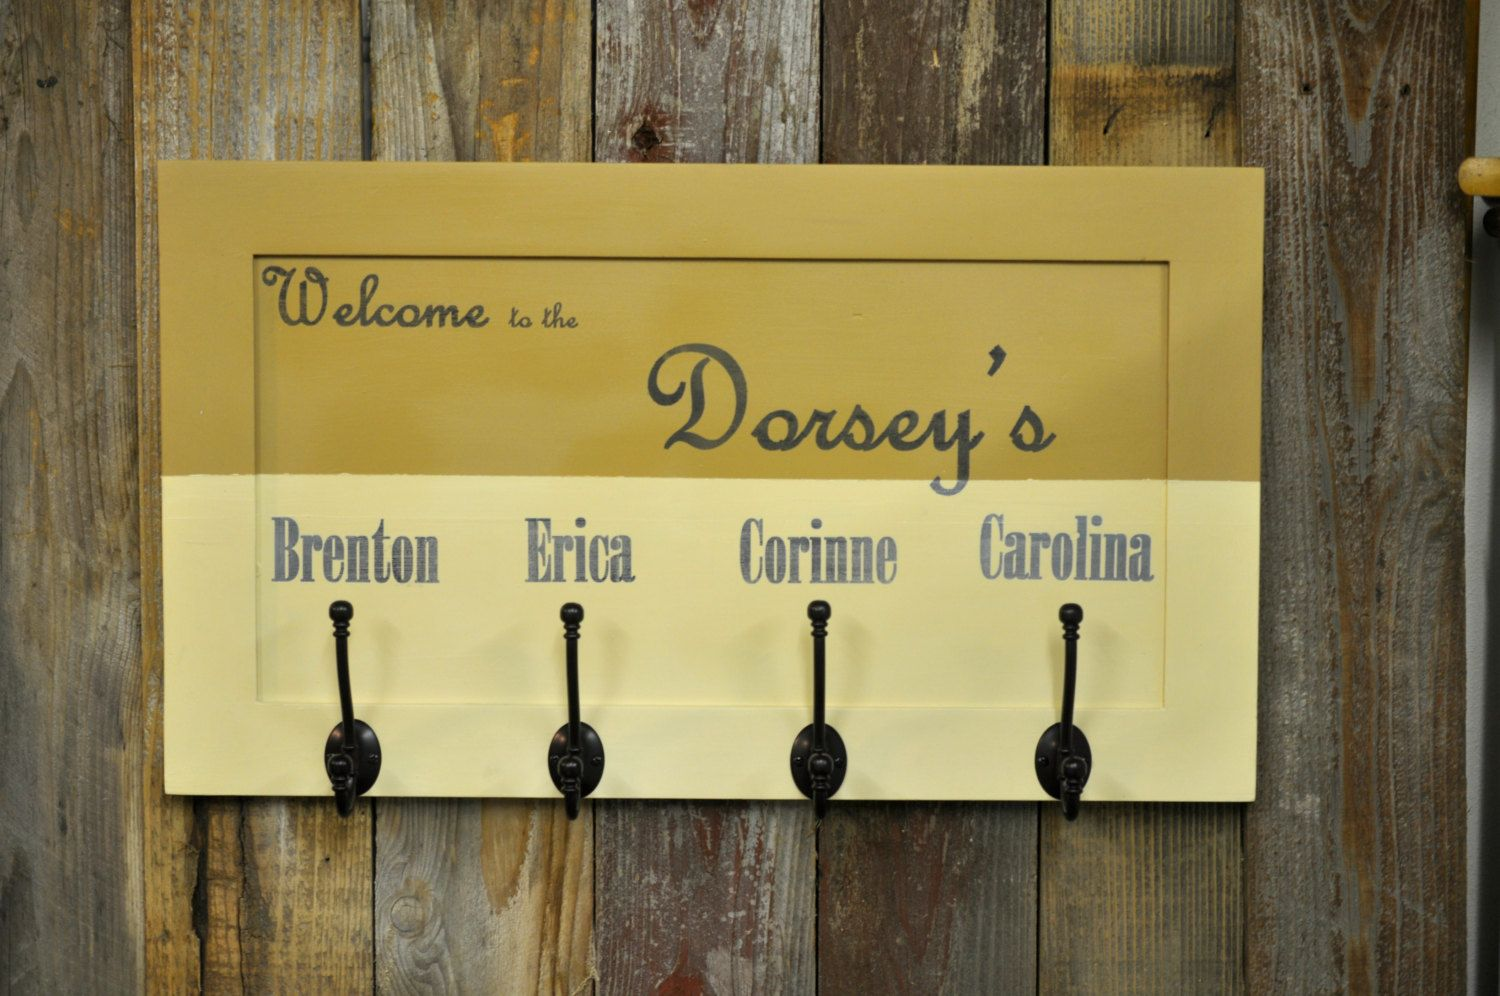 Personalized Coat Rack Personalized Coat Rack Together Forever 2 ...